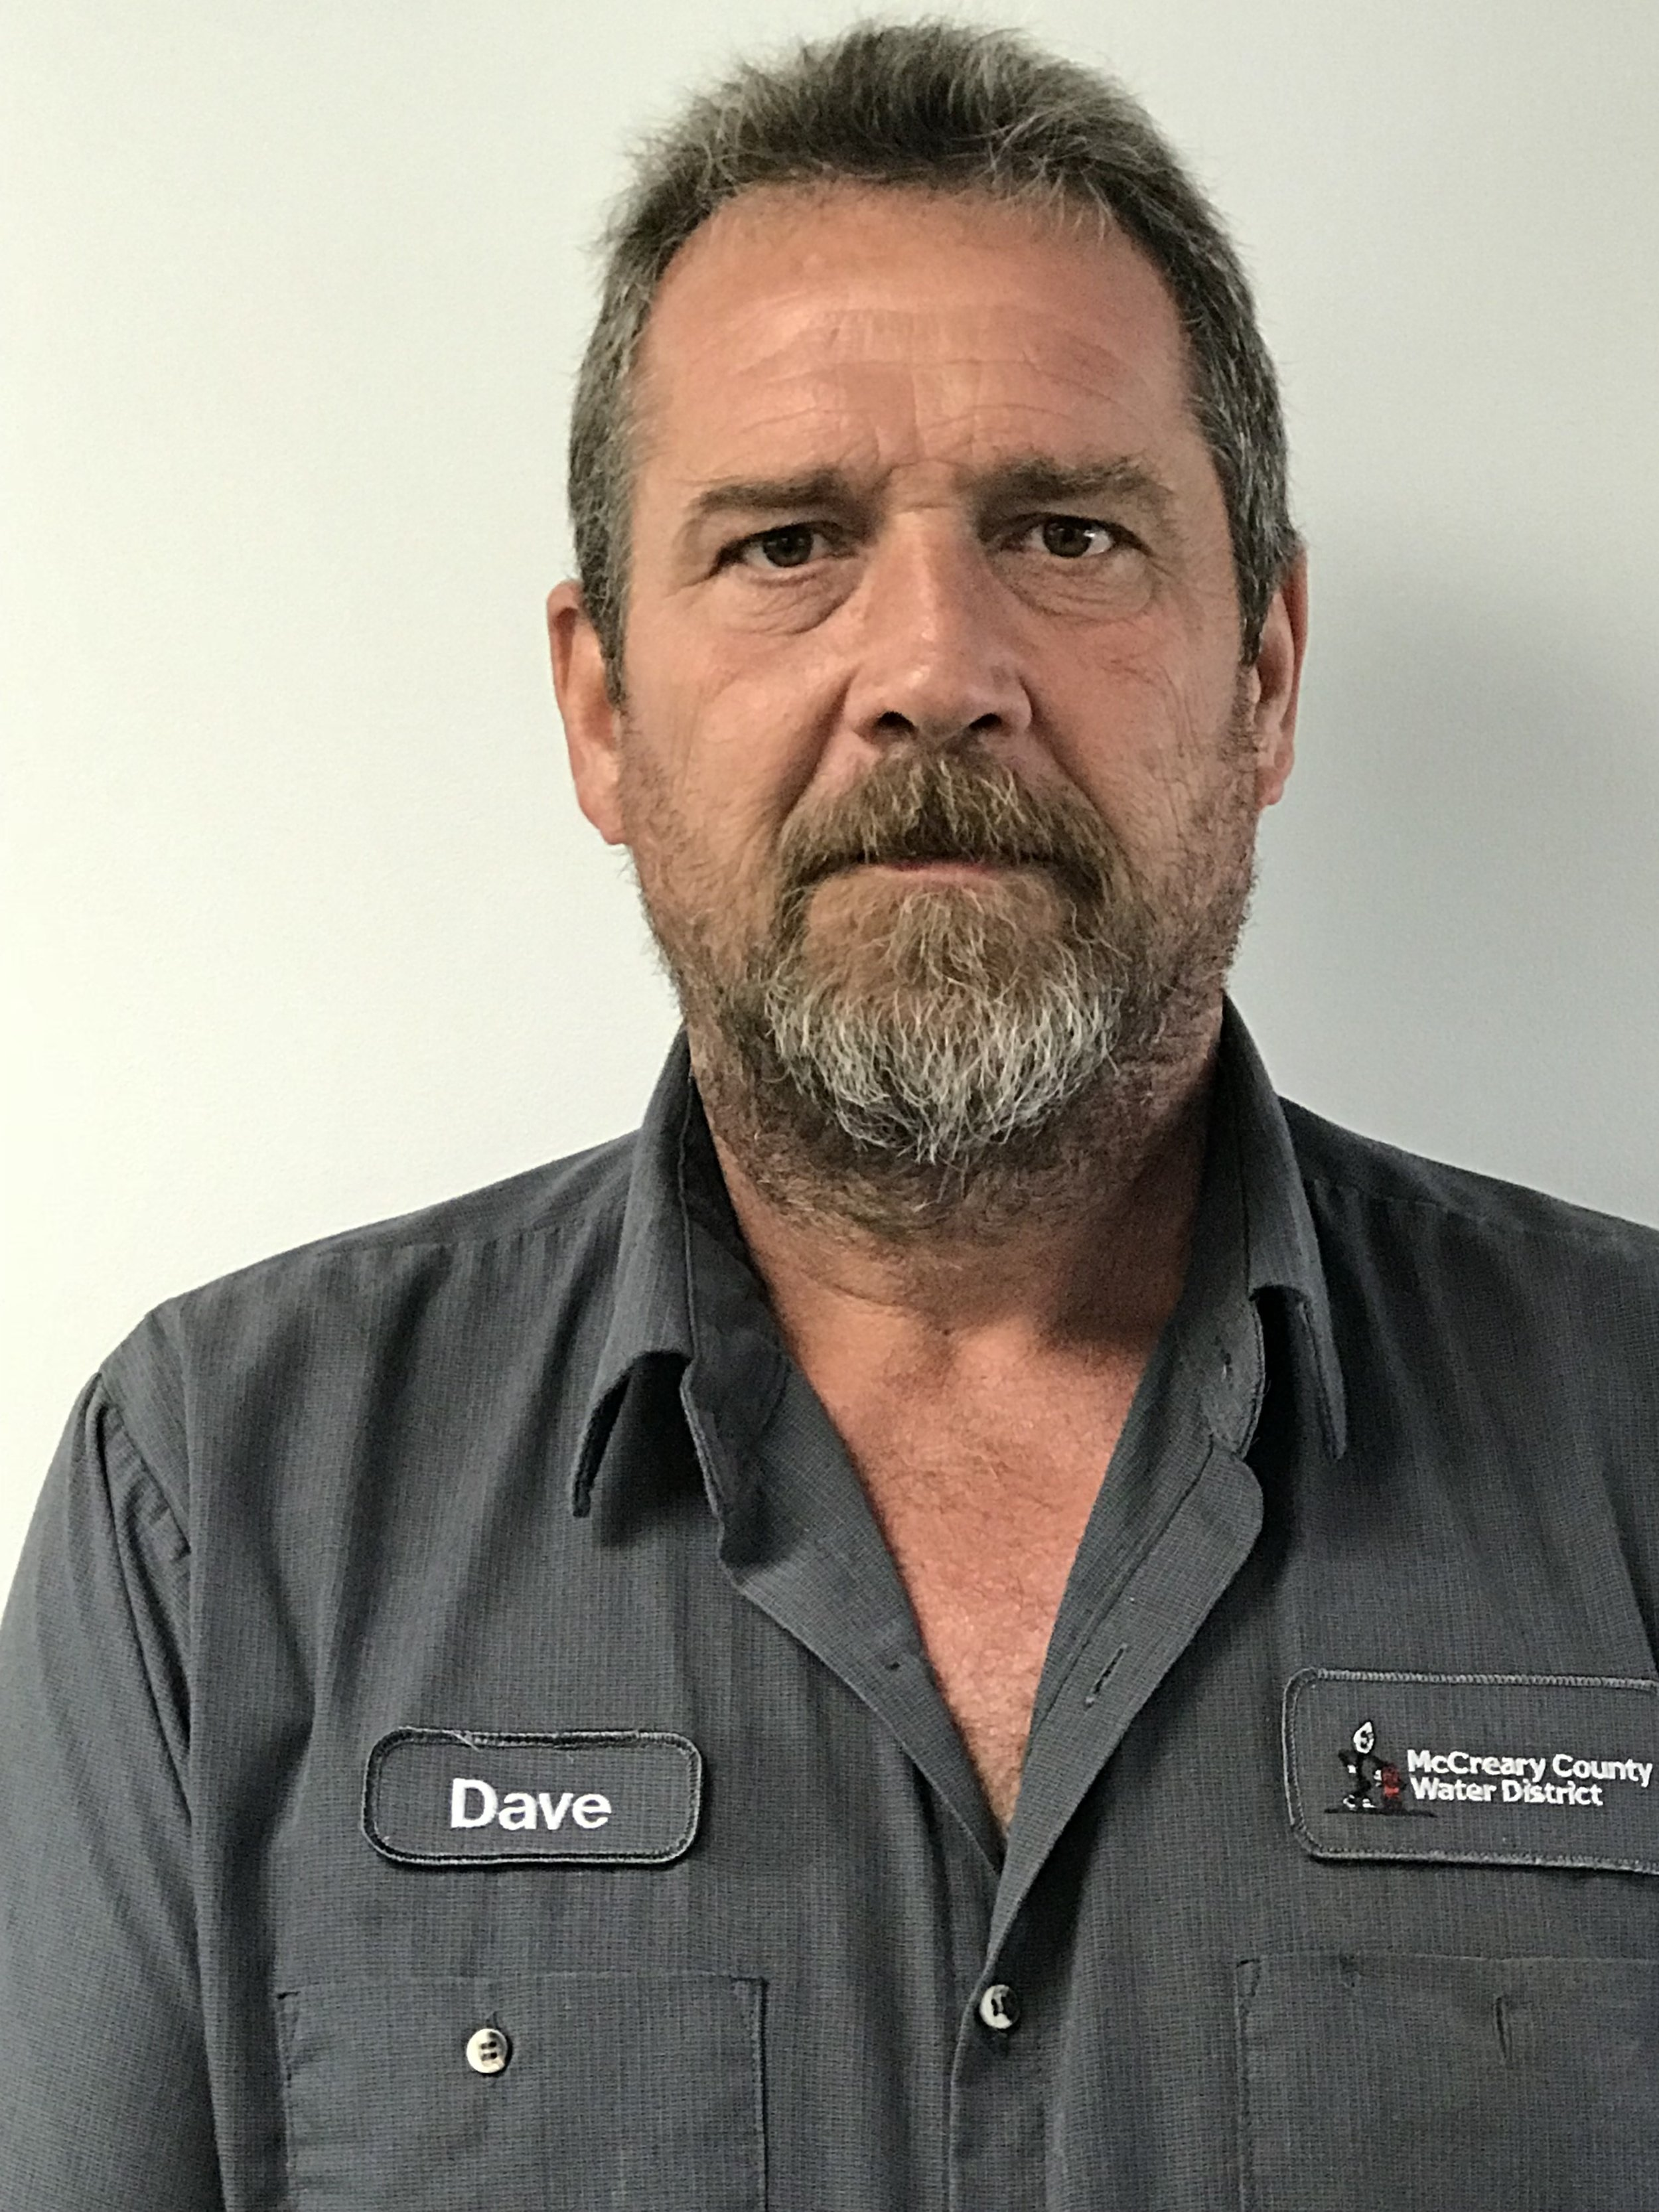 DAVE KILBY  has worked at the water district since 2016. He holds Drinking Water Distribution Class III and Wastewater Collection Class II Certifications. Dave also worked for the water district from 1994 until 2003.